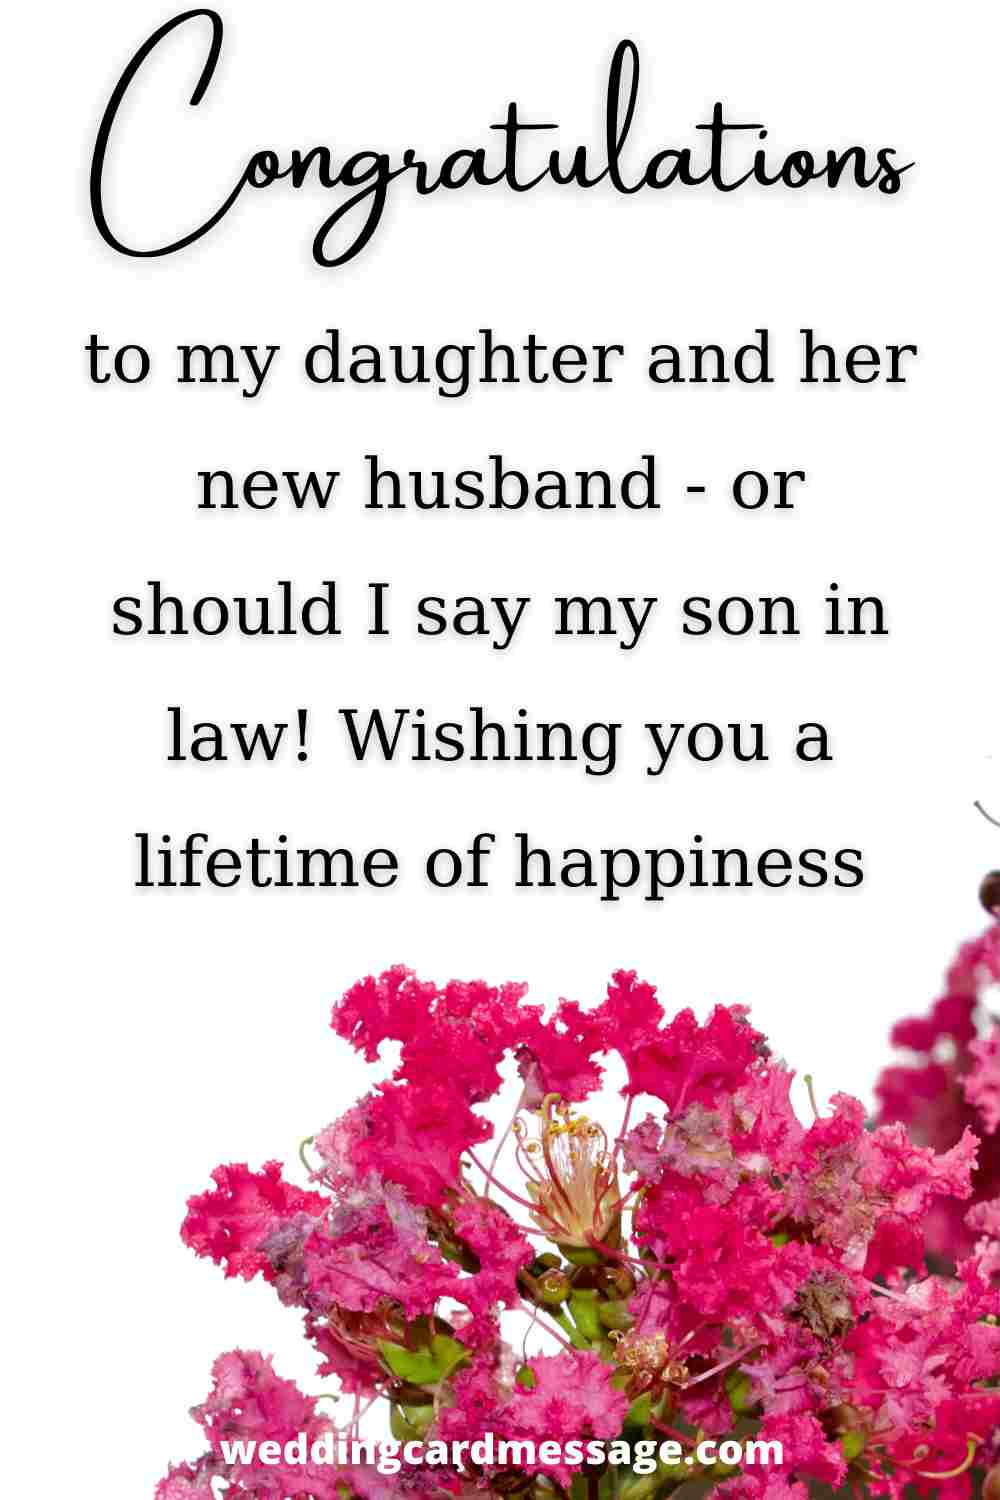 wedding message for son in law